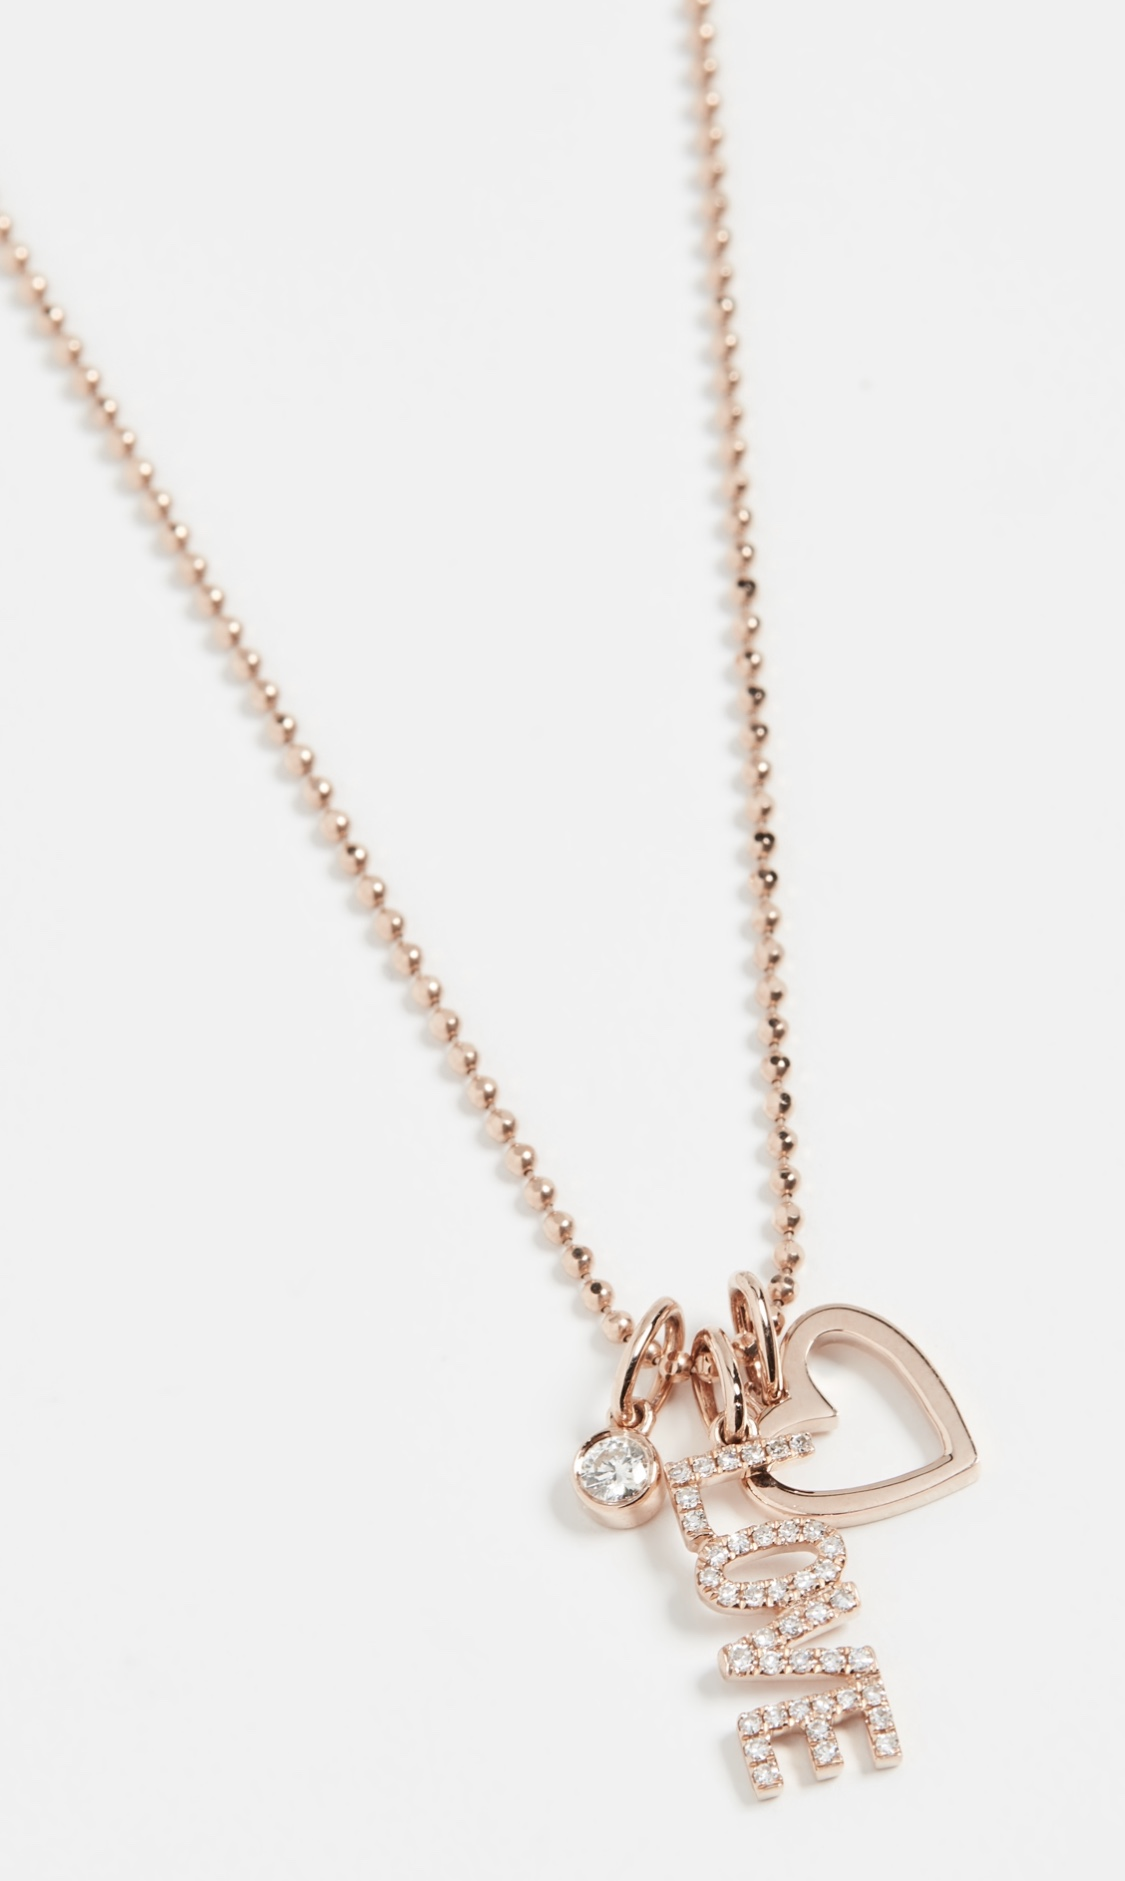 EF Collection 14k Diamond Love Charm Necklace $1,295